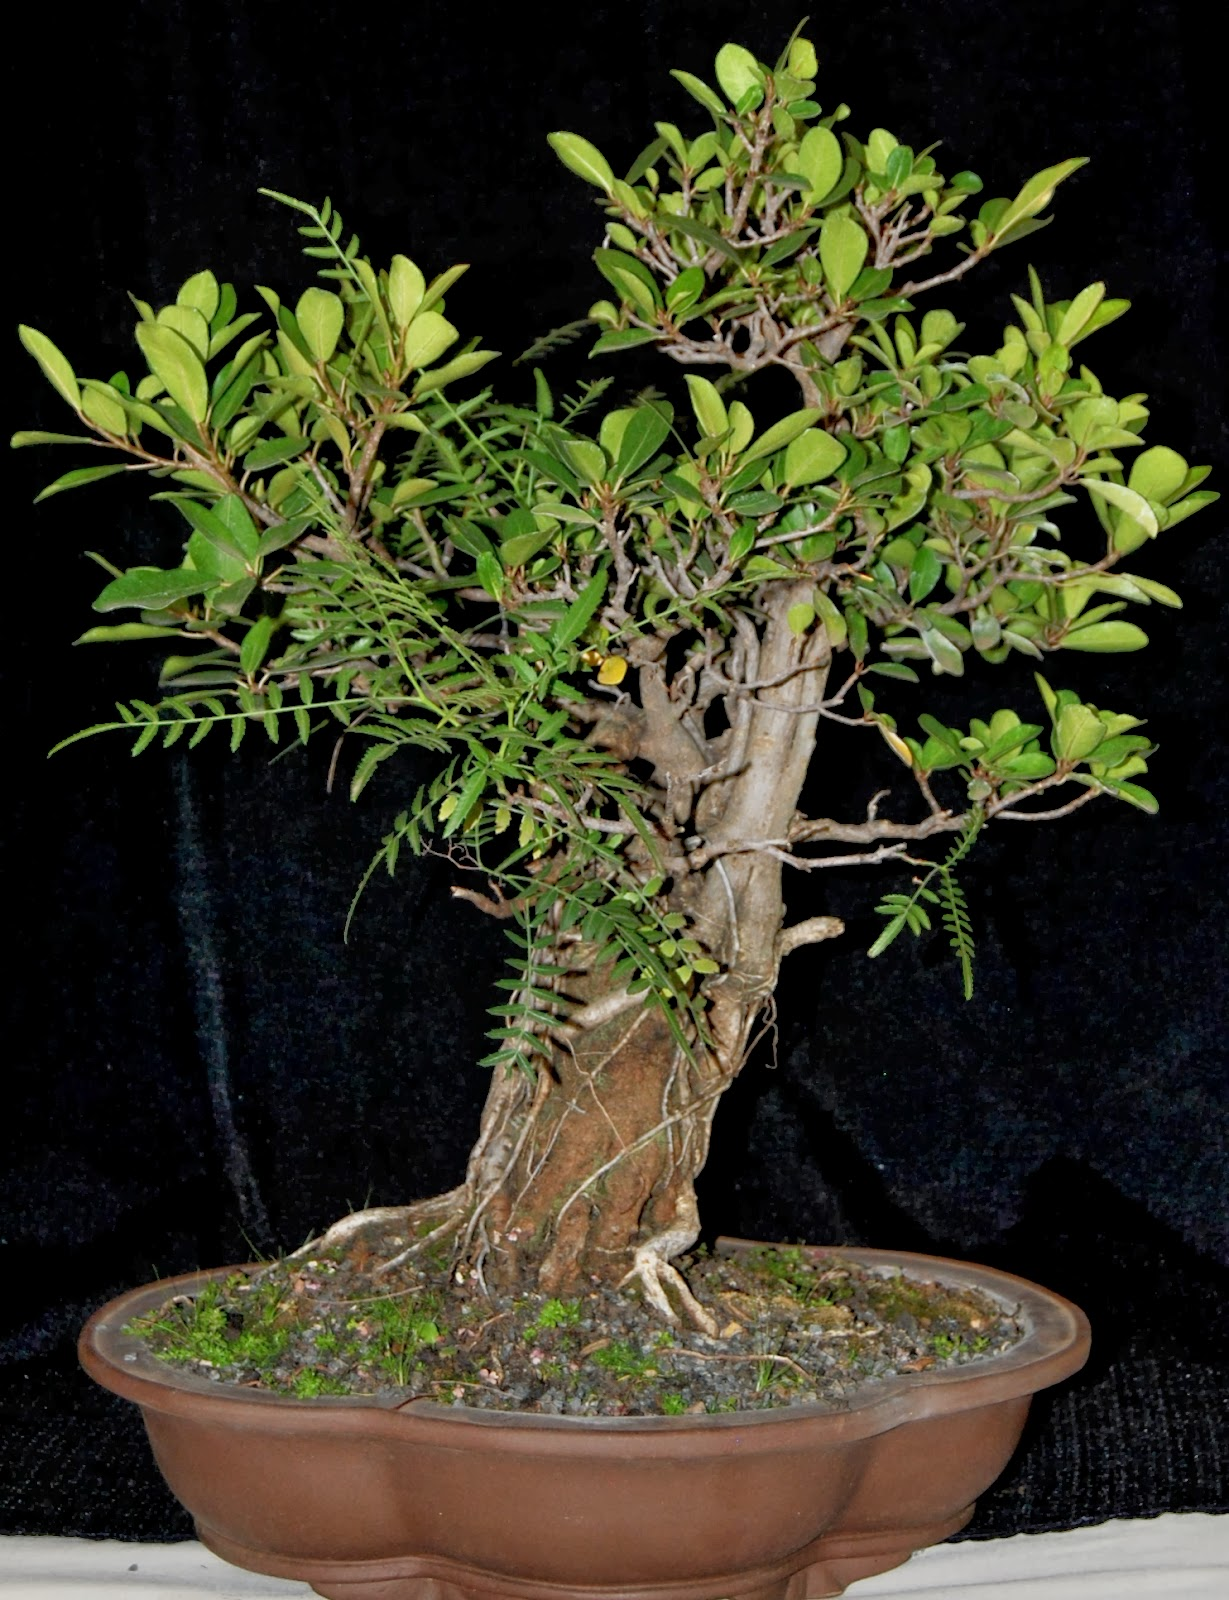 The Strangler Style By Mack Boshoff LENNARD39S BONSAI BEGINNINGS